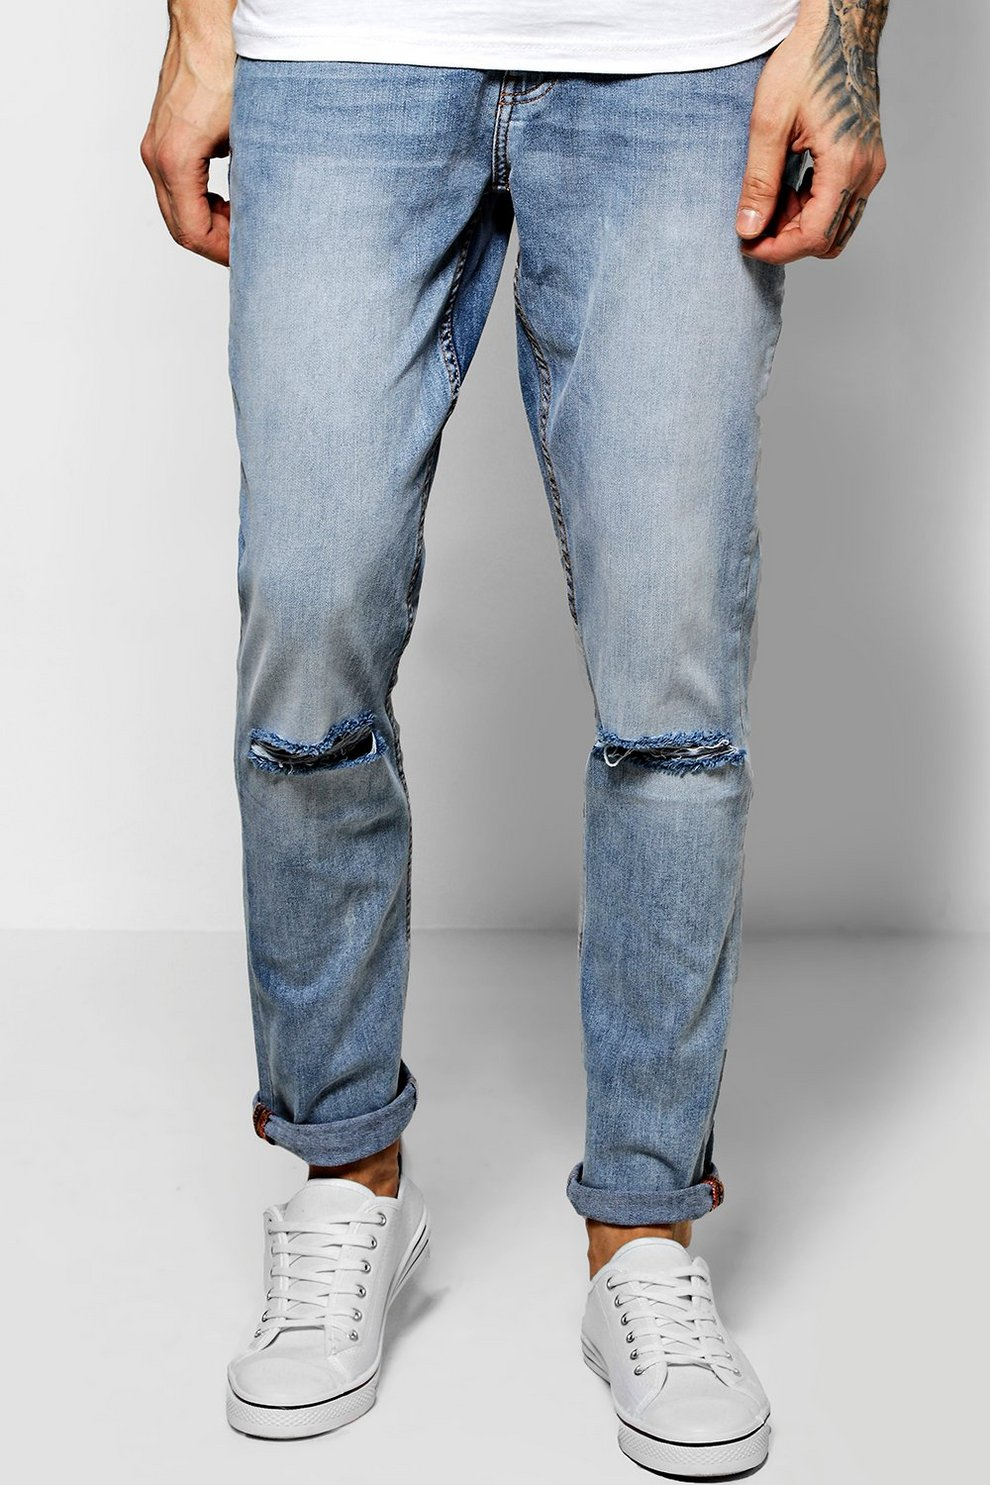 1d2a75041d30 Super Skinny Fit Jeans With Ripped Knees - boohooMAN